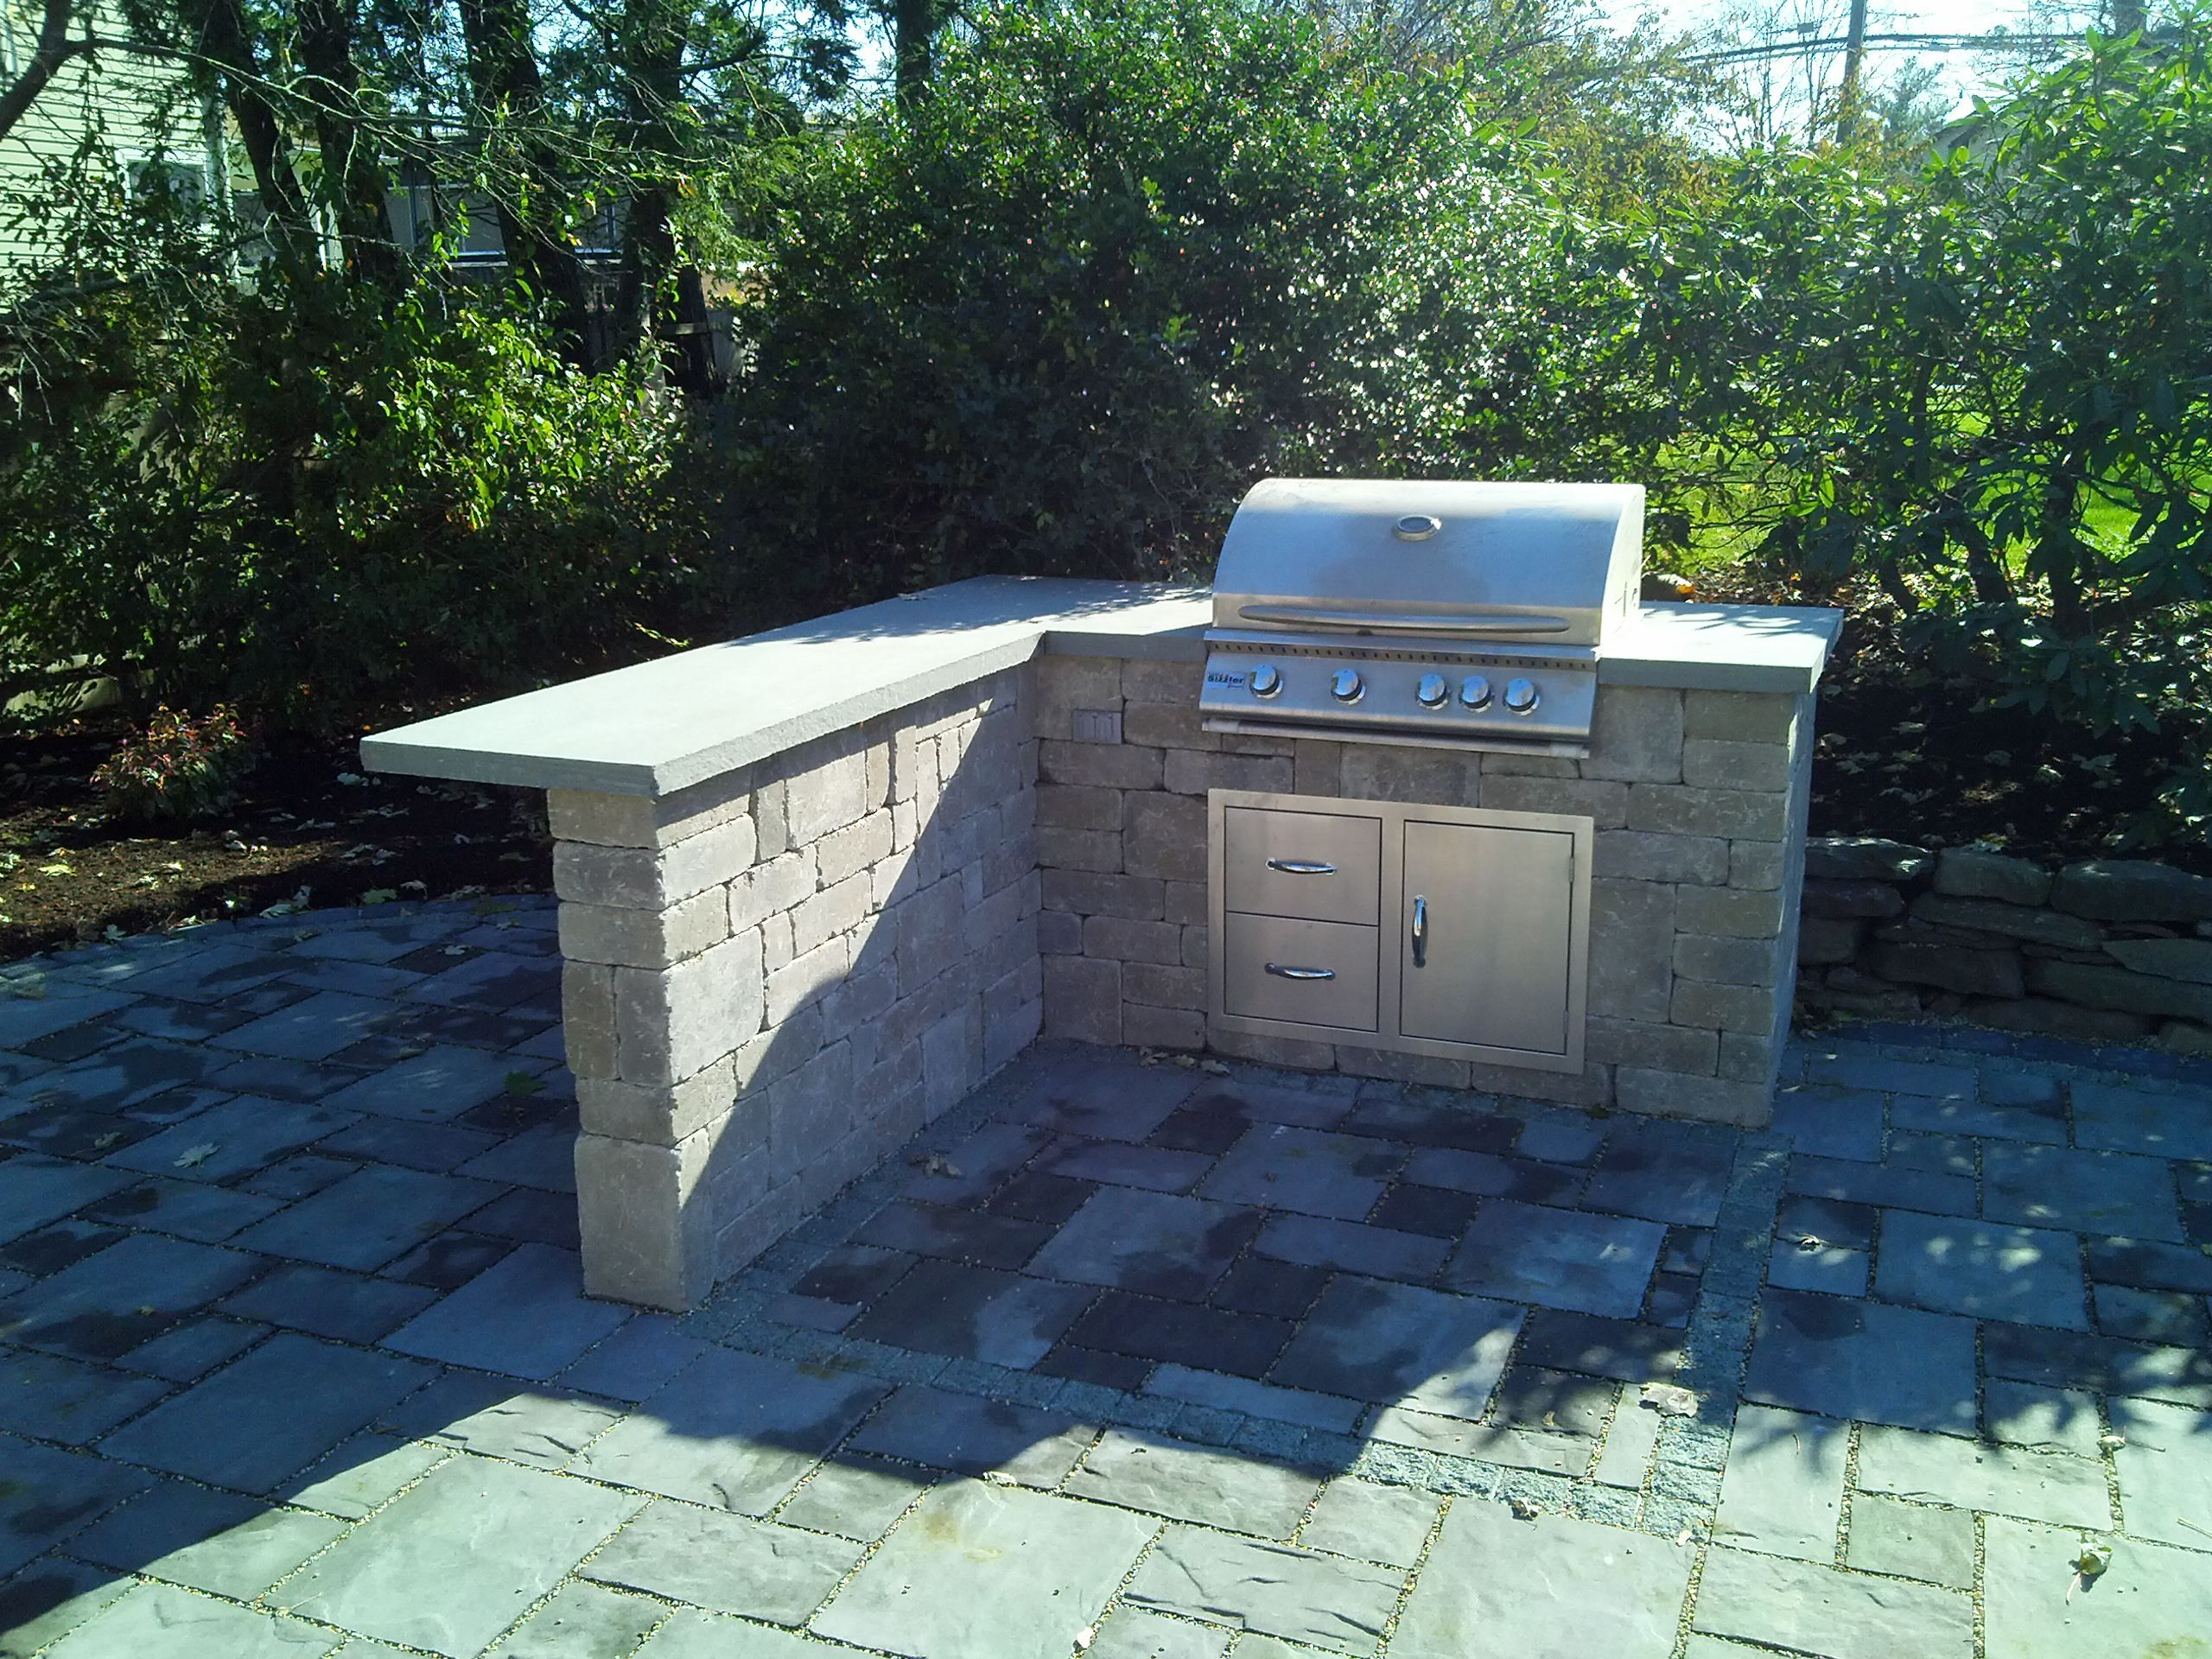 Outdoor Küche Diy Built In Grill On Paver Patio By Bahler Brothers With